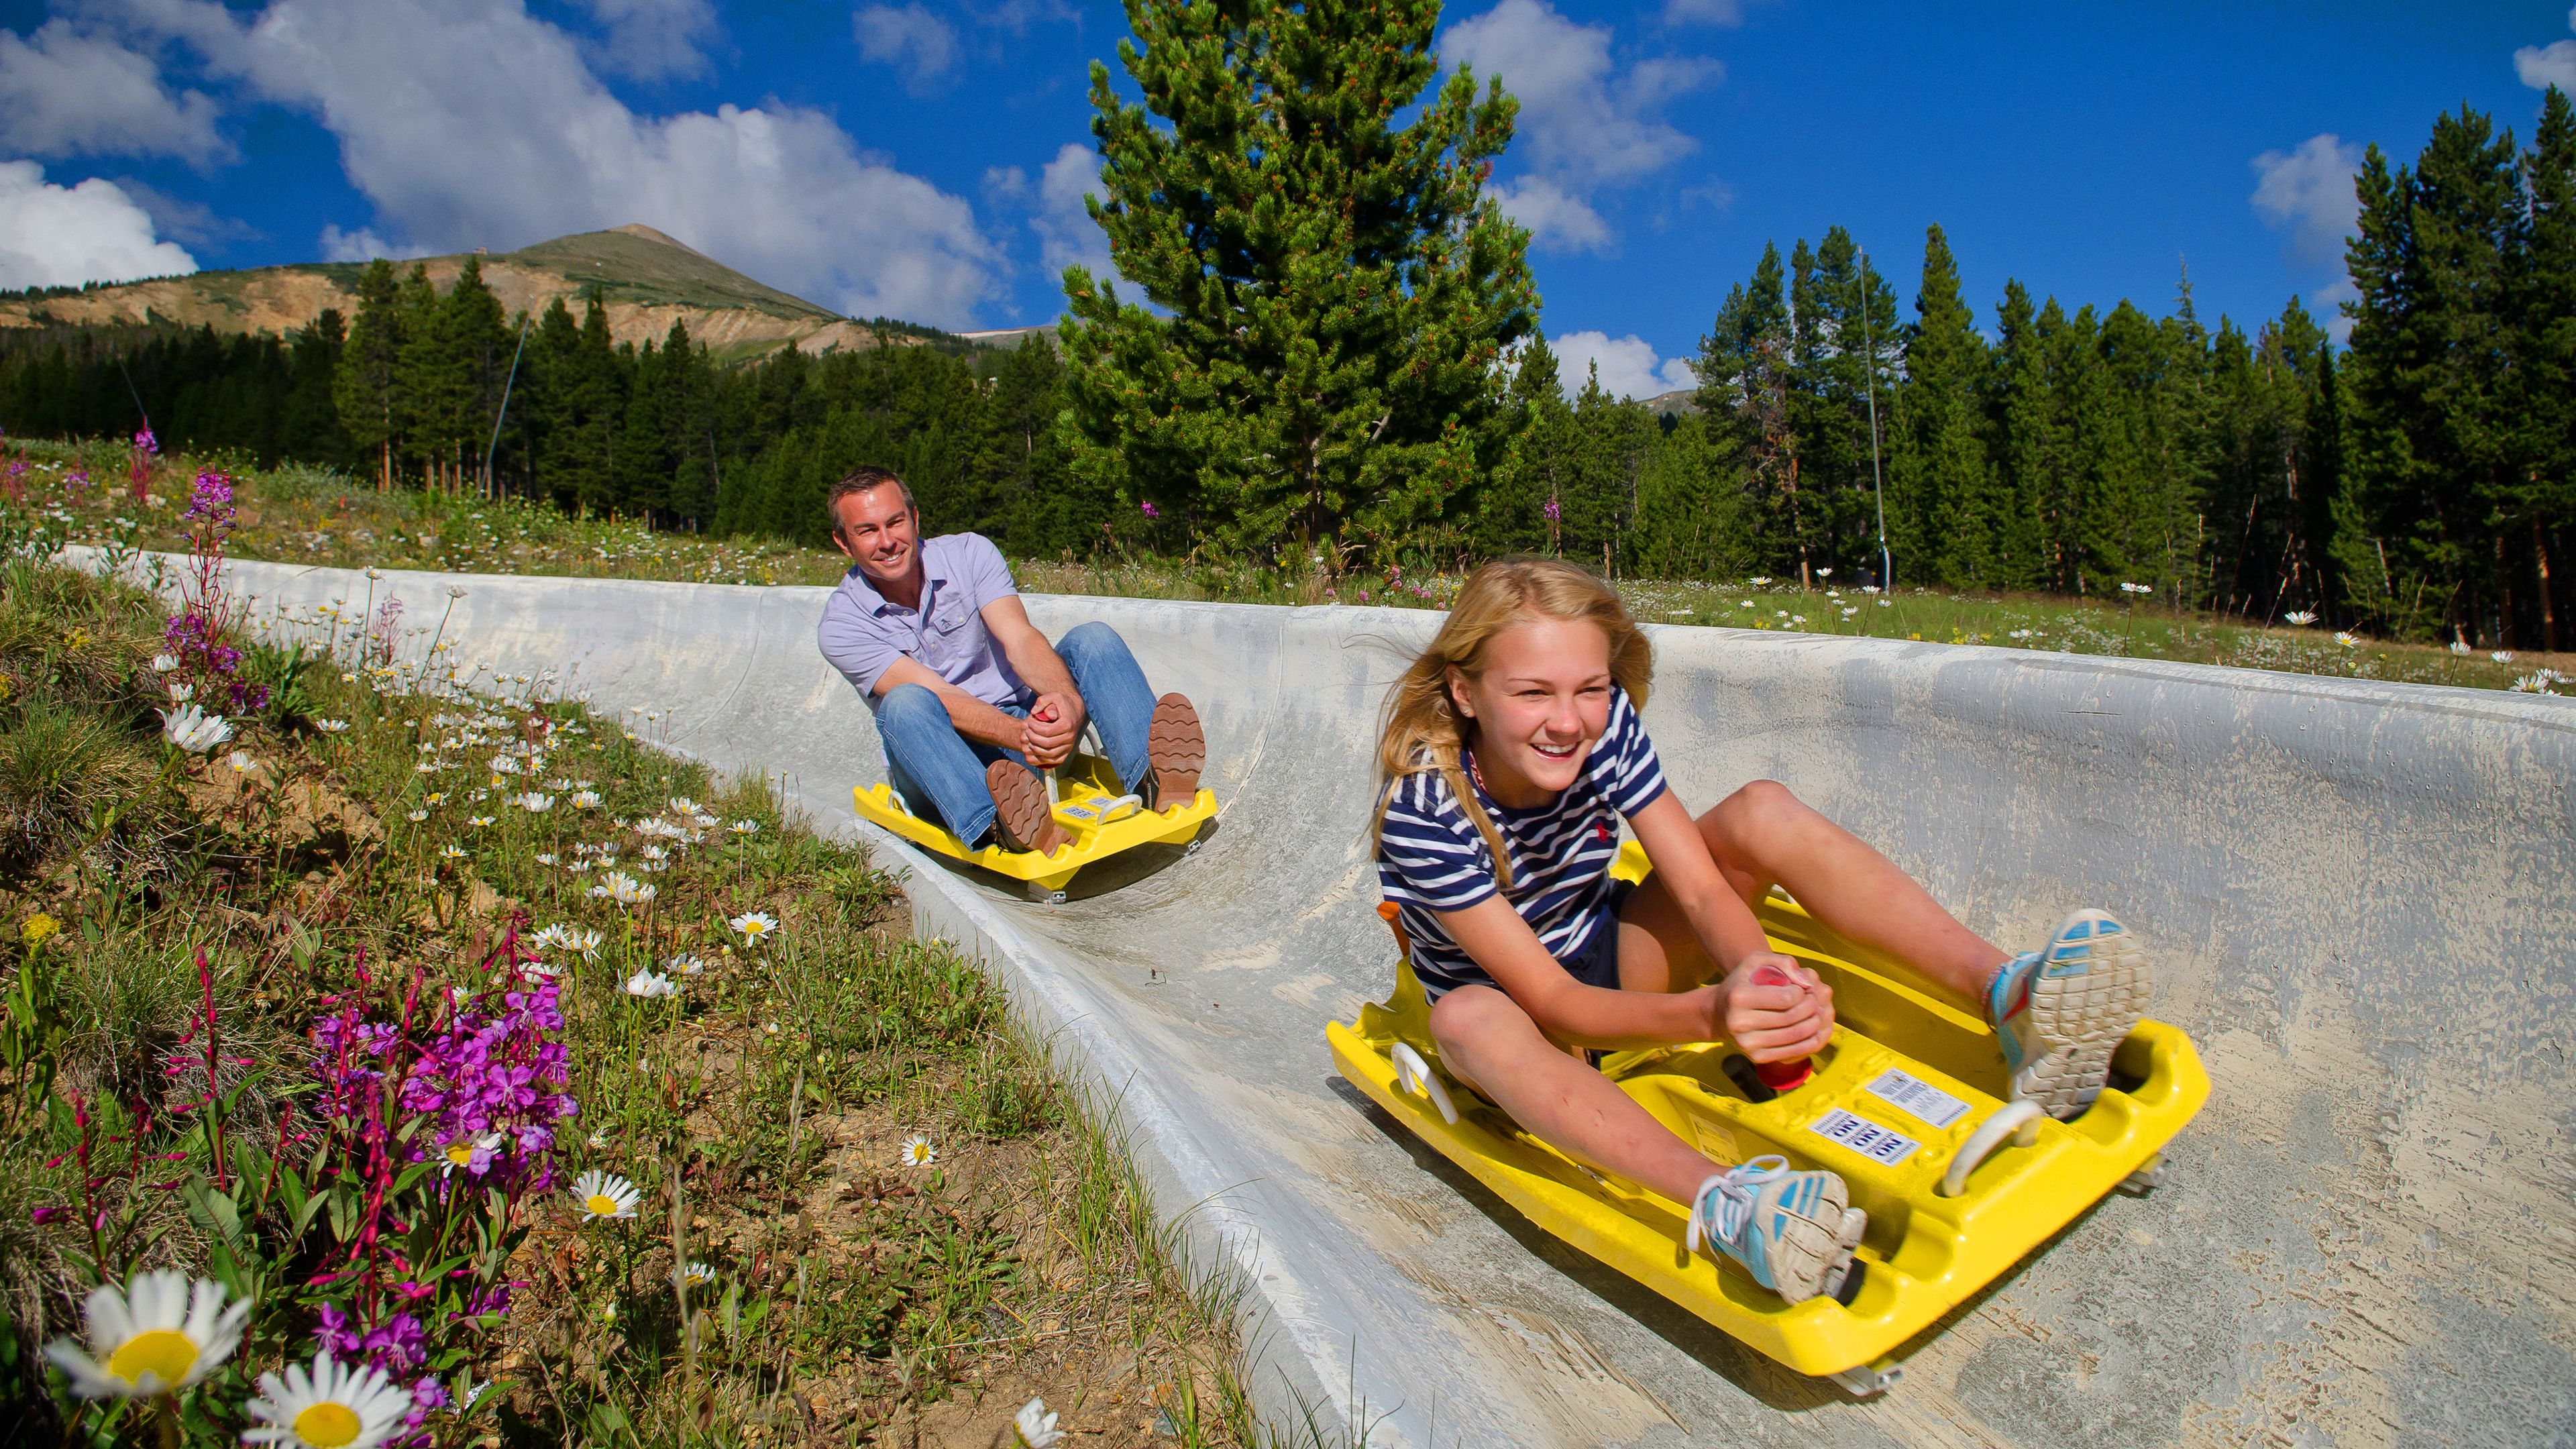 Man and girl ride carts down a concrete track